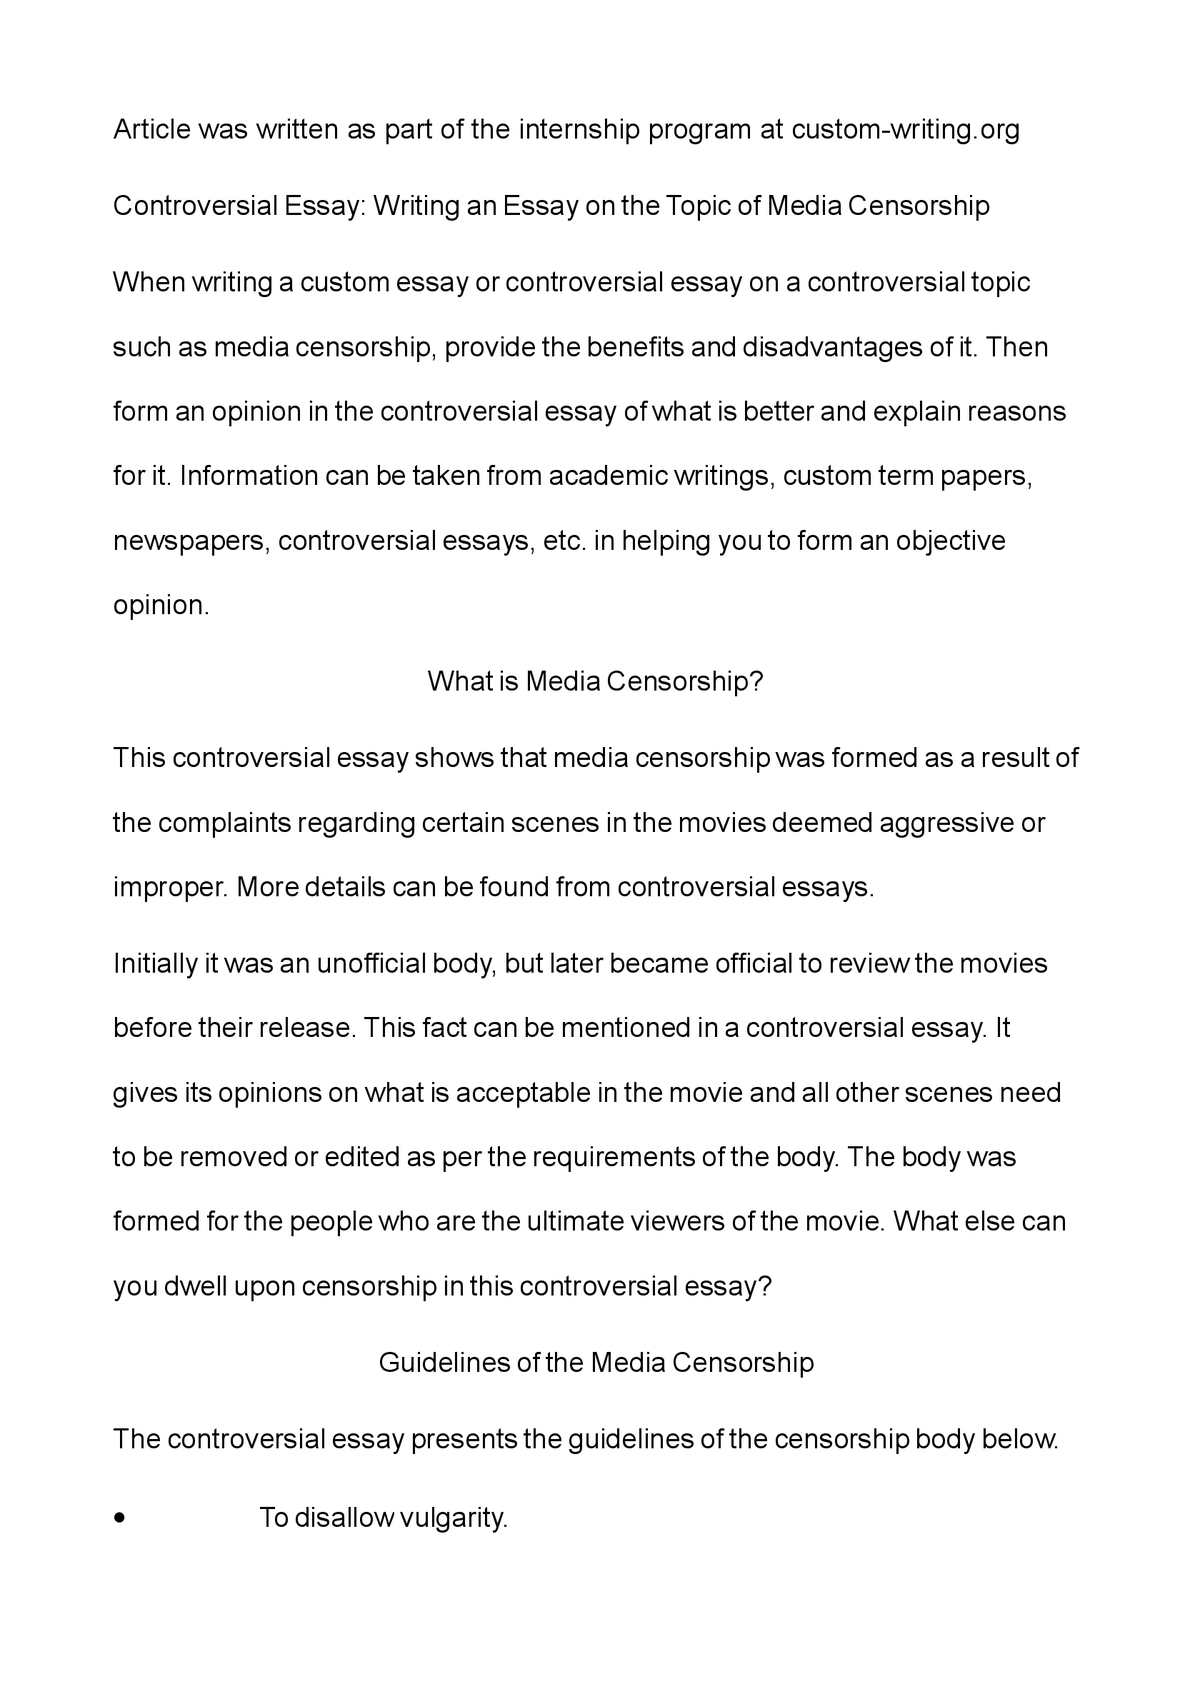 011 Essay Example Controversial Best Topics For High School Students Outline Format On Immigration Full